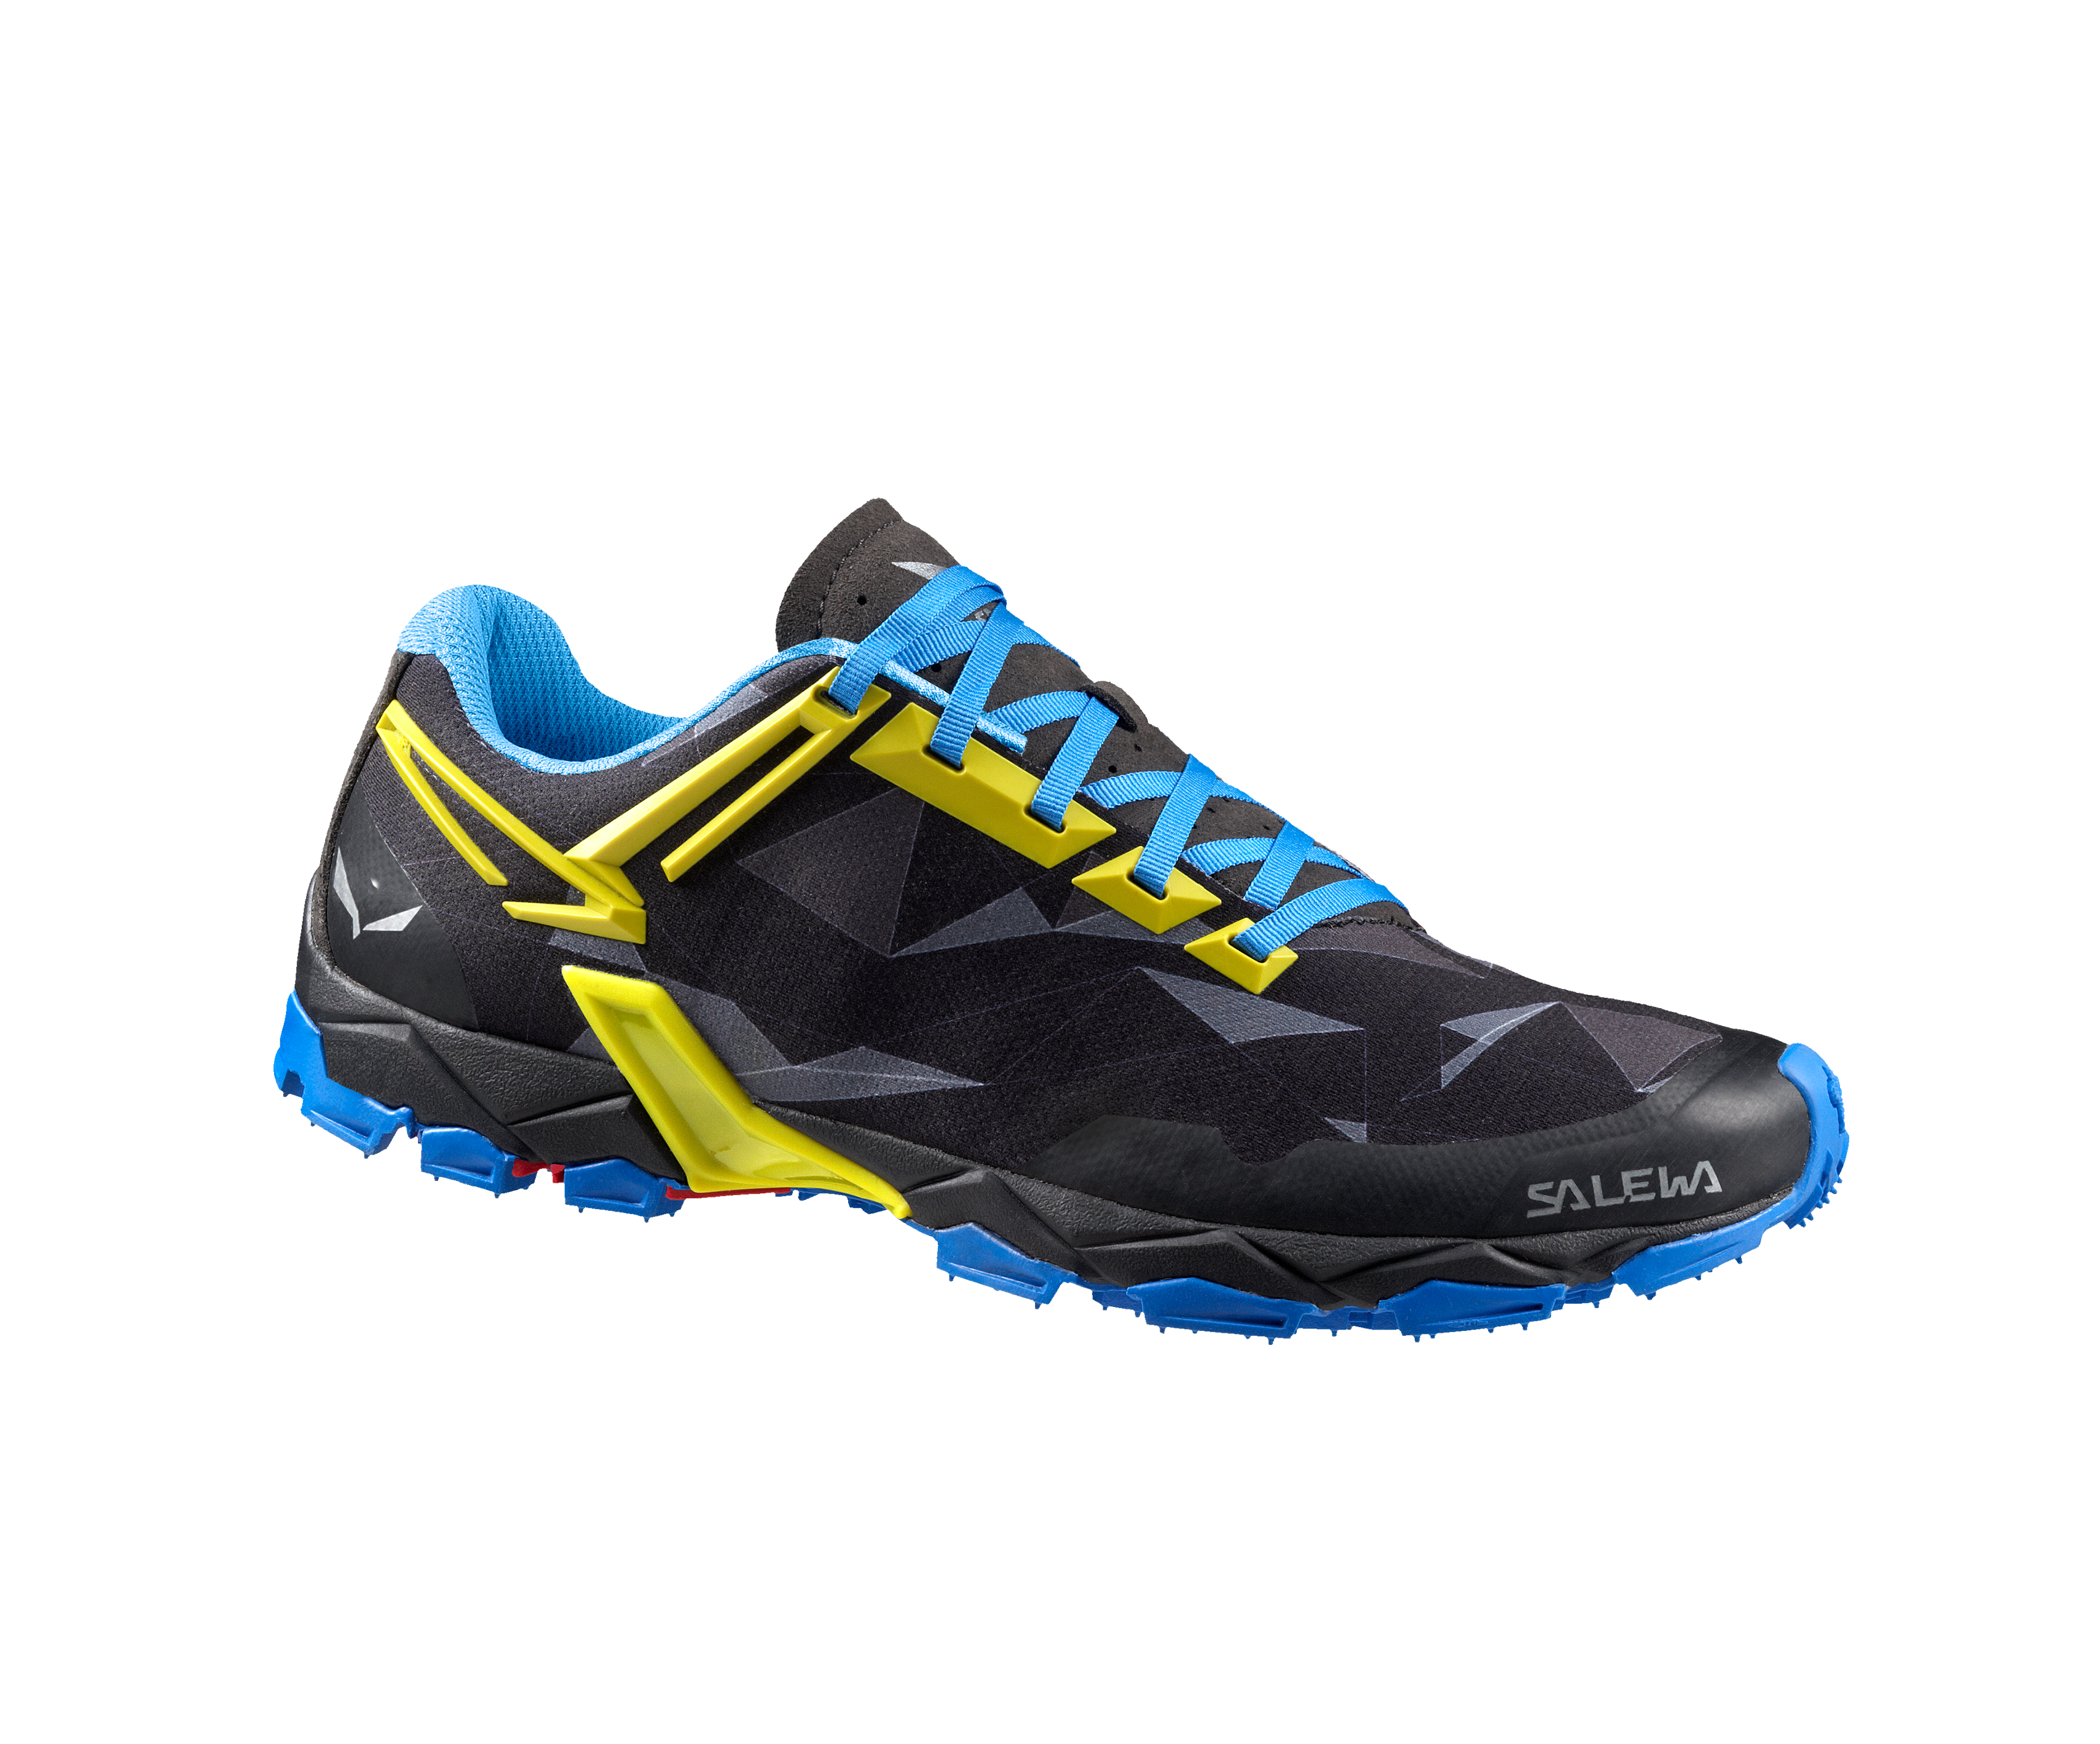 30d56bdf468d7 6 New Trail Shoes to Buy This Winter - Men s Journal